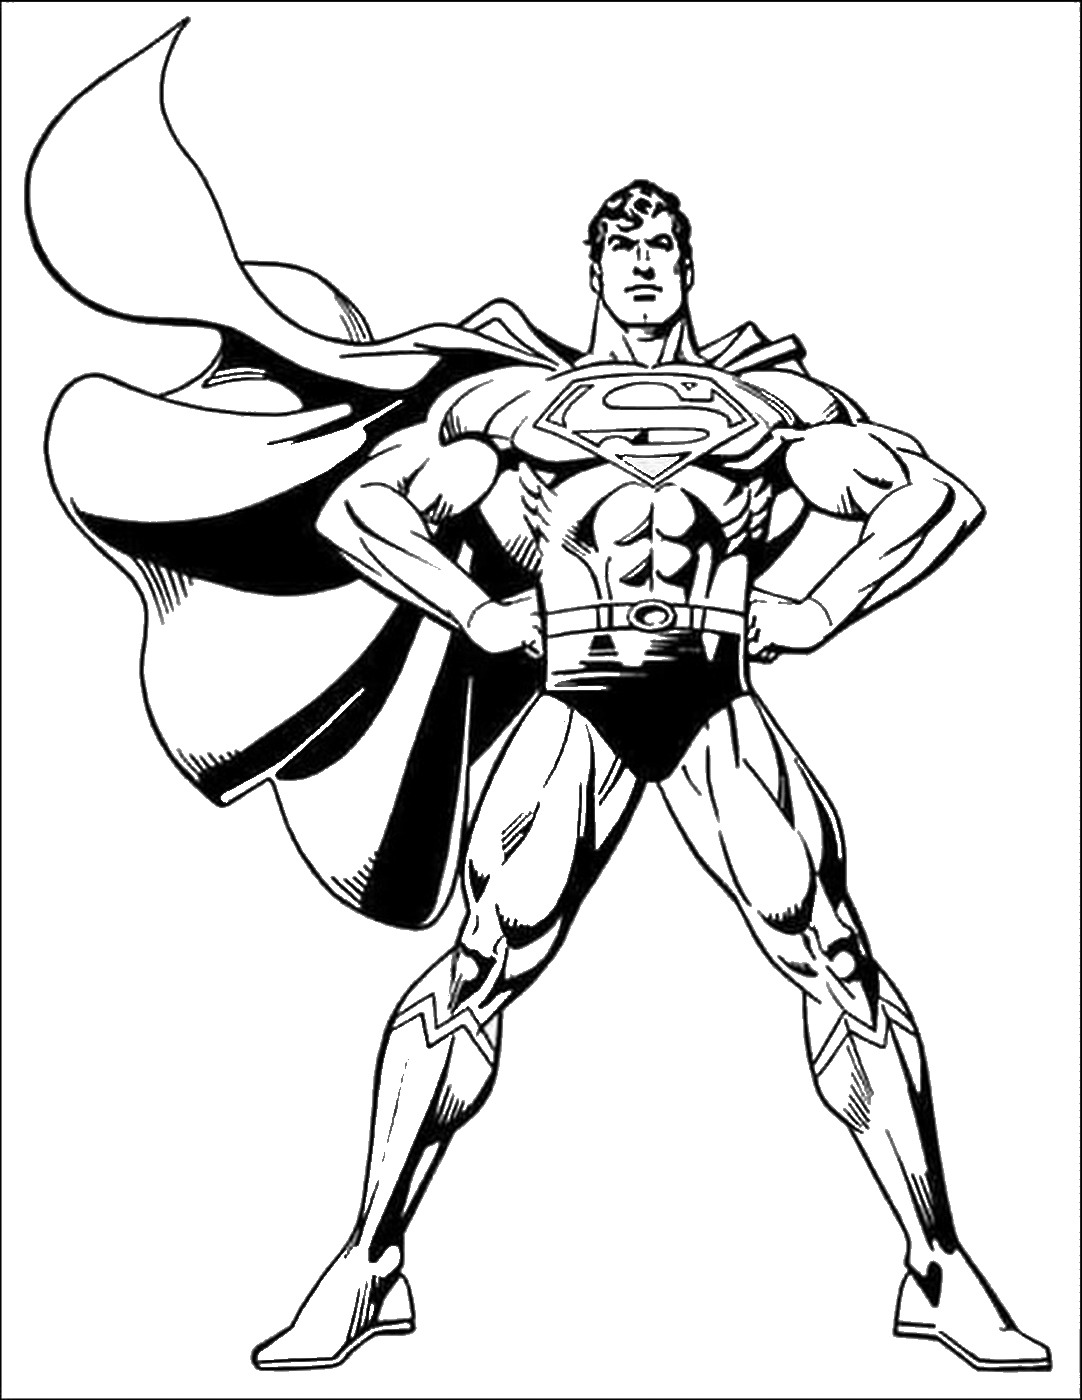 superman free coloring pages superman super hero coloring pages printable coloringsnet superman pages free coloring